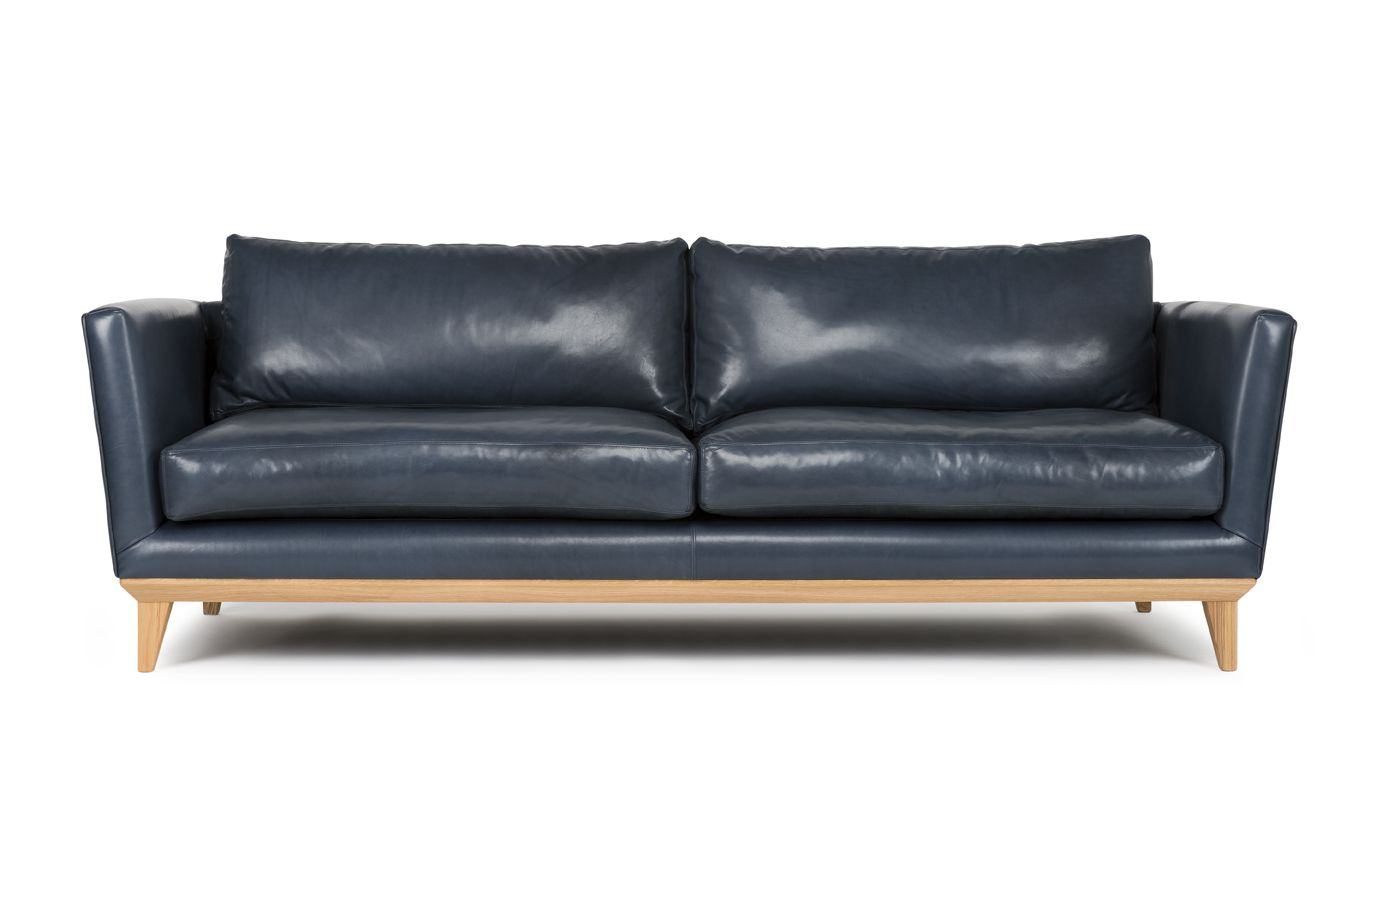 contemporary leather sofas sydney furniture sofa covers ireland curtis by arthur g navy made in